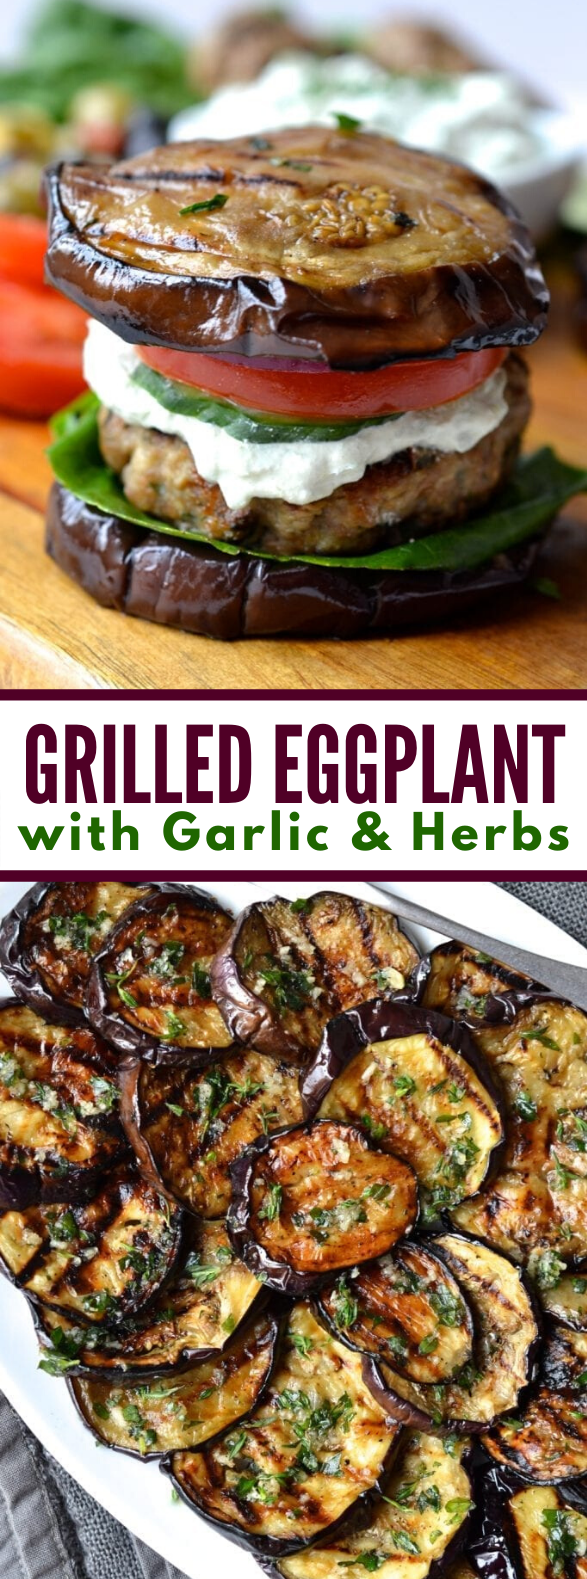 Grilled Eggplant #vegetarian #summerrecipes